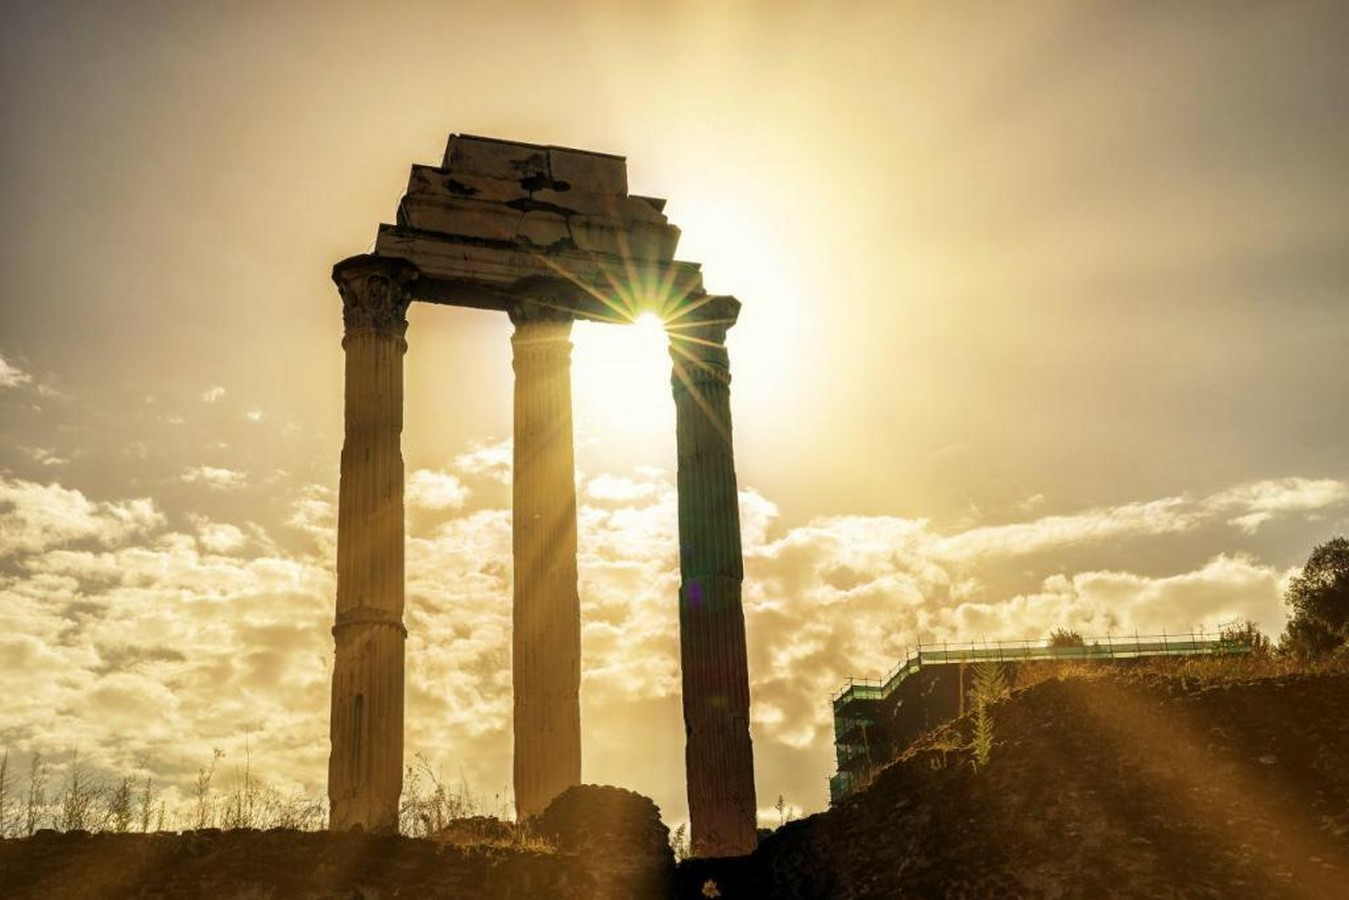 The Roman Forum, Rome: Heritage stuck in time - Sheet8